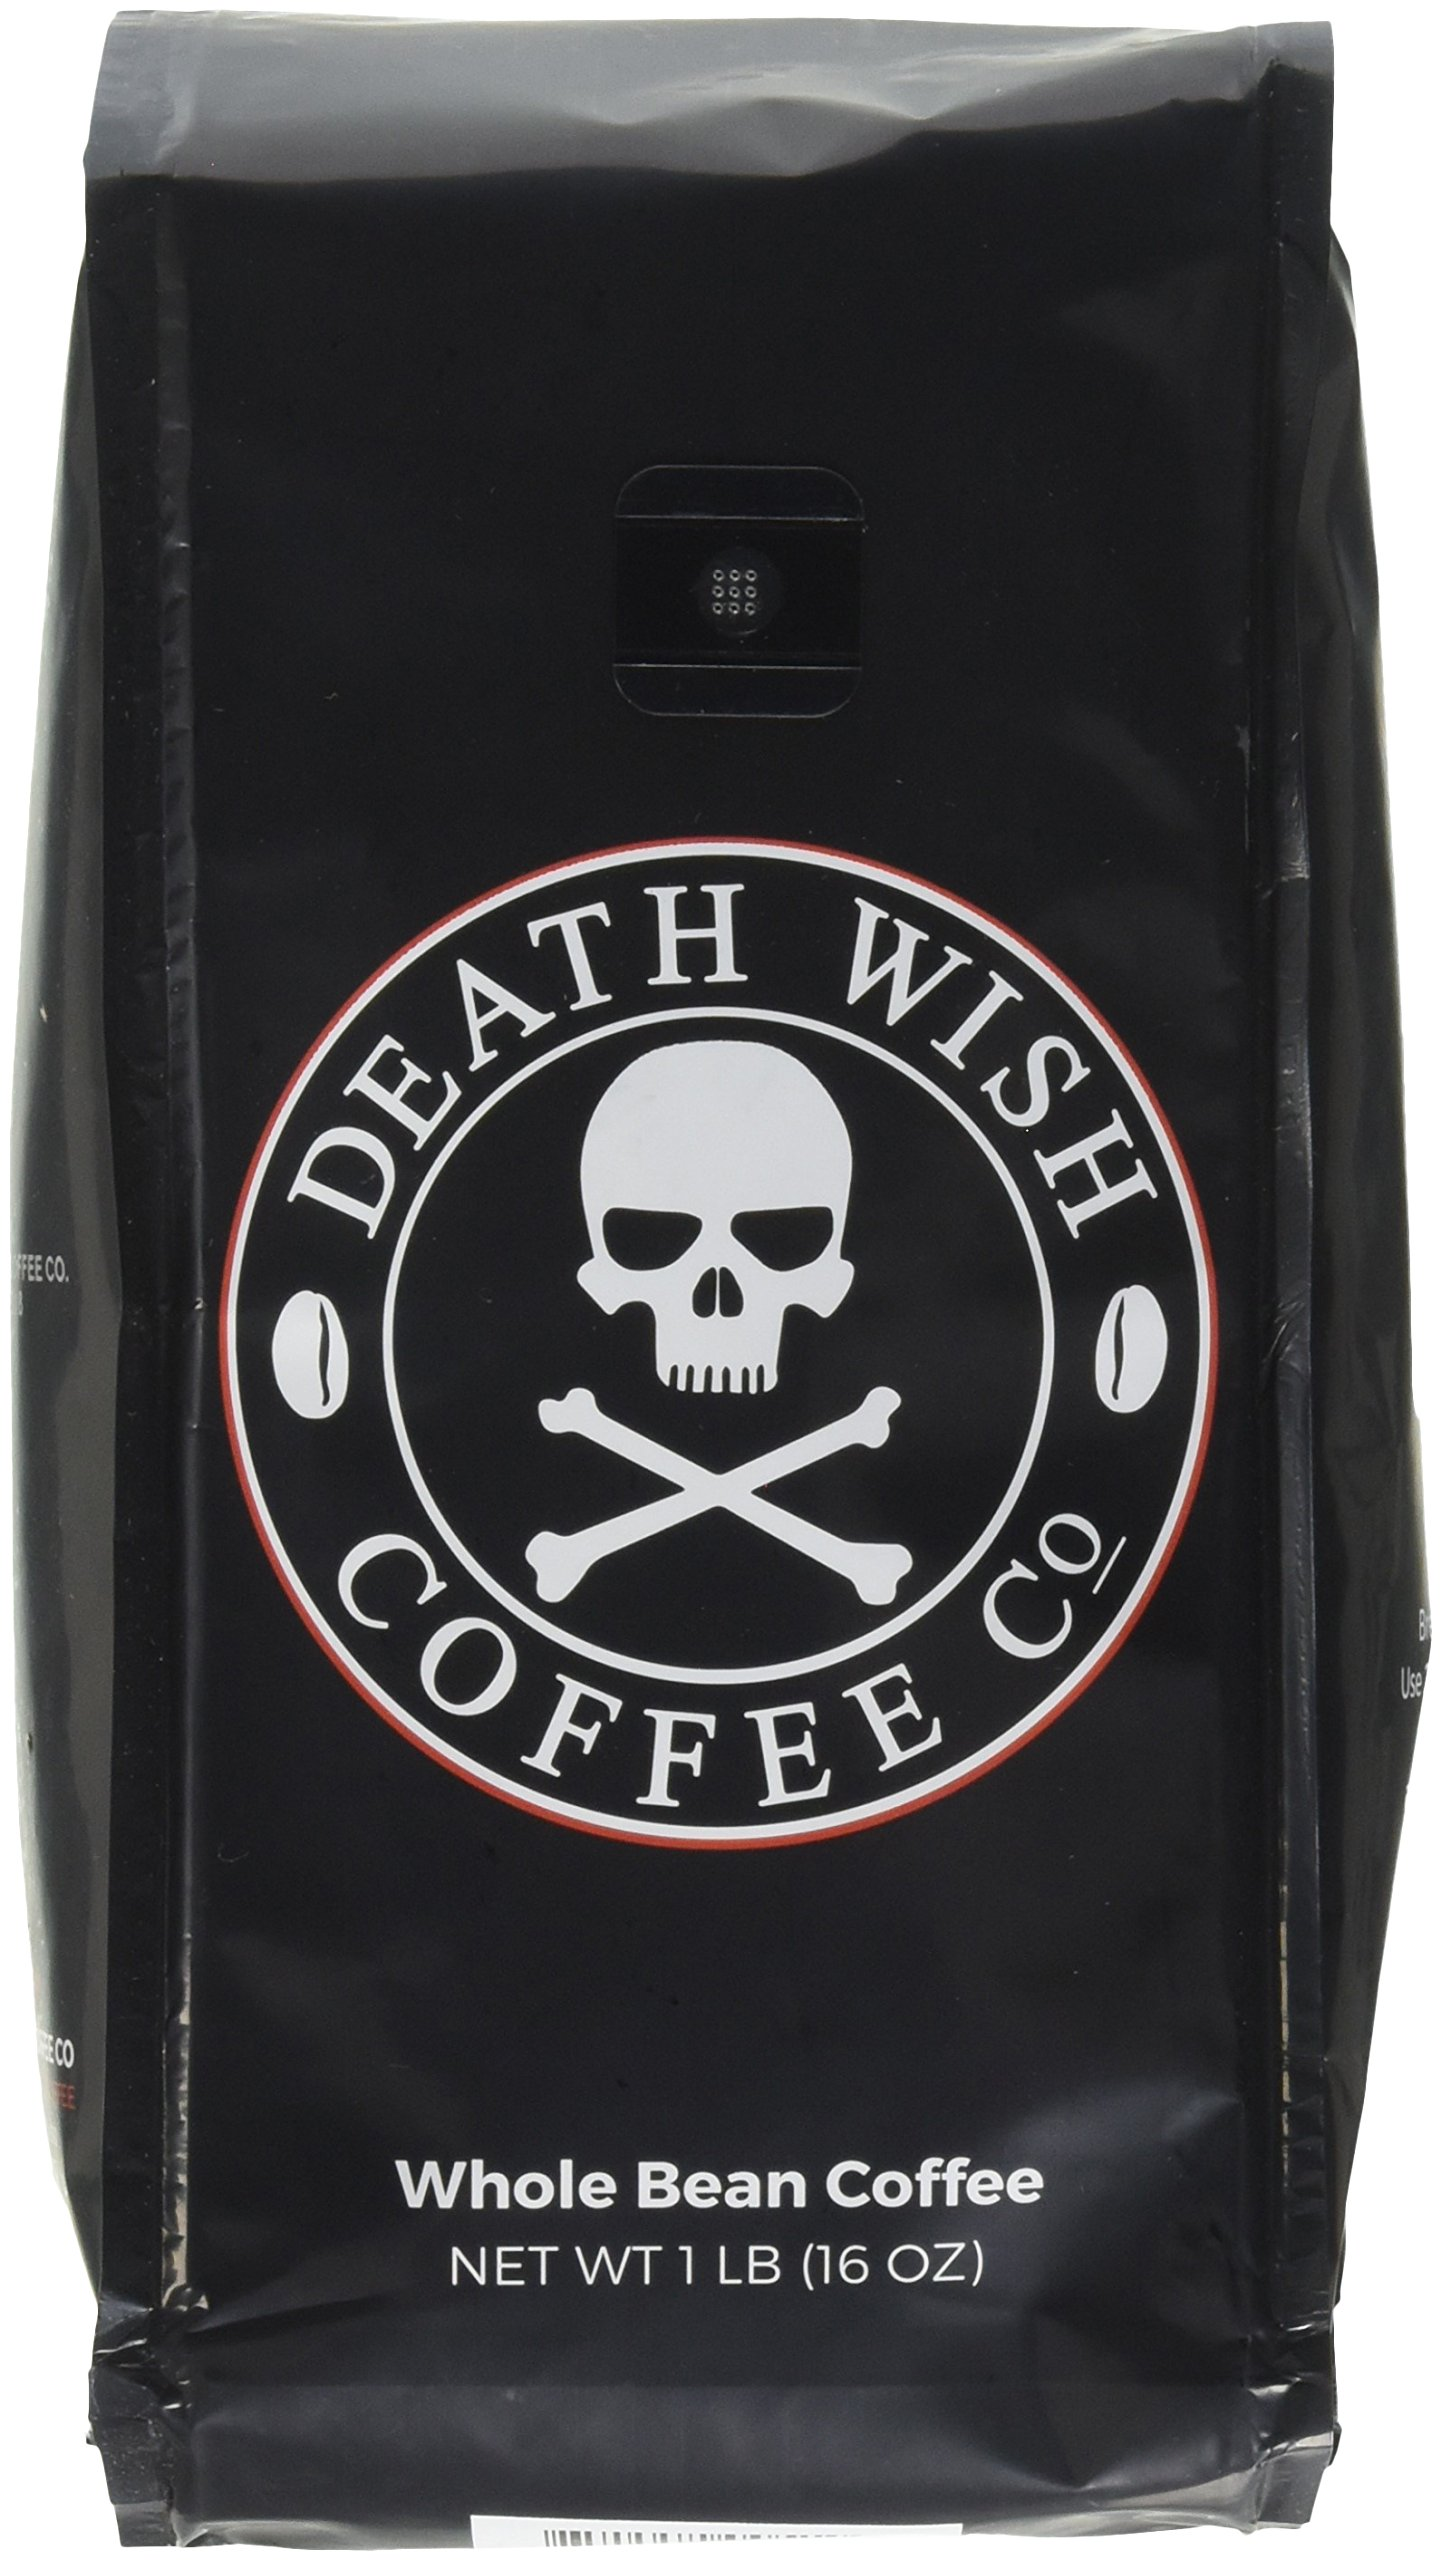 Death Wish Whole Bean Coffee Bundle Deal, The World's Strongest Coffee, Fair Trade and USDA Certified Organic - 2 lb